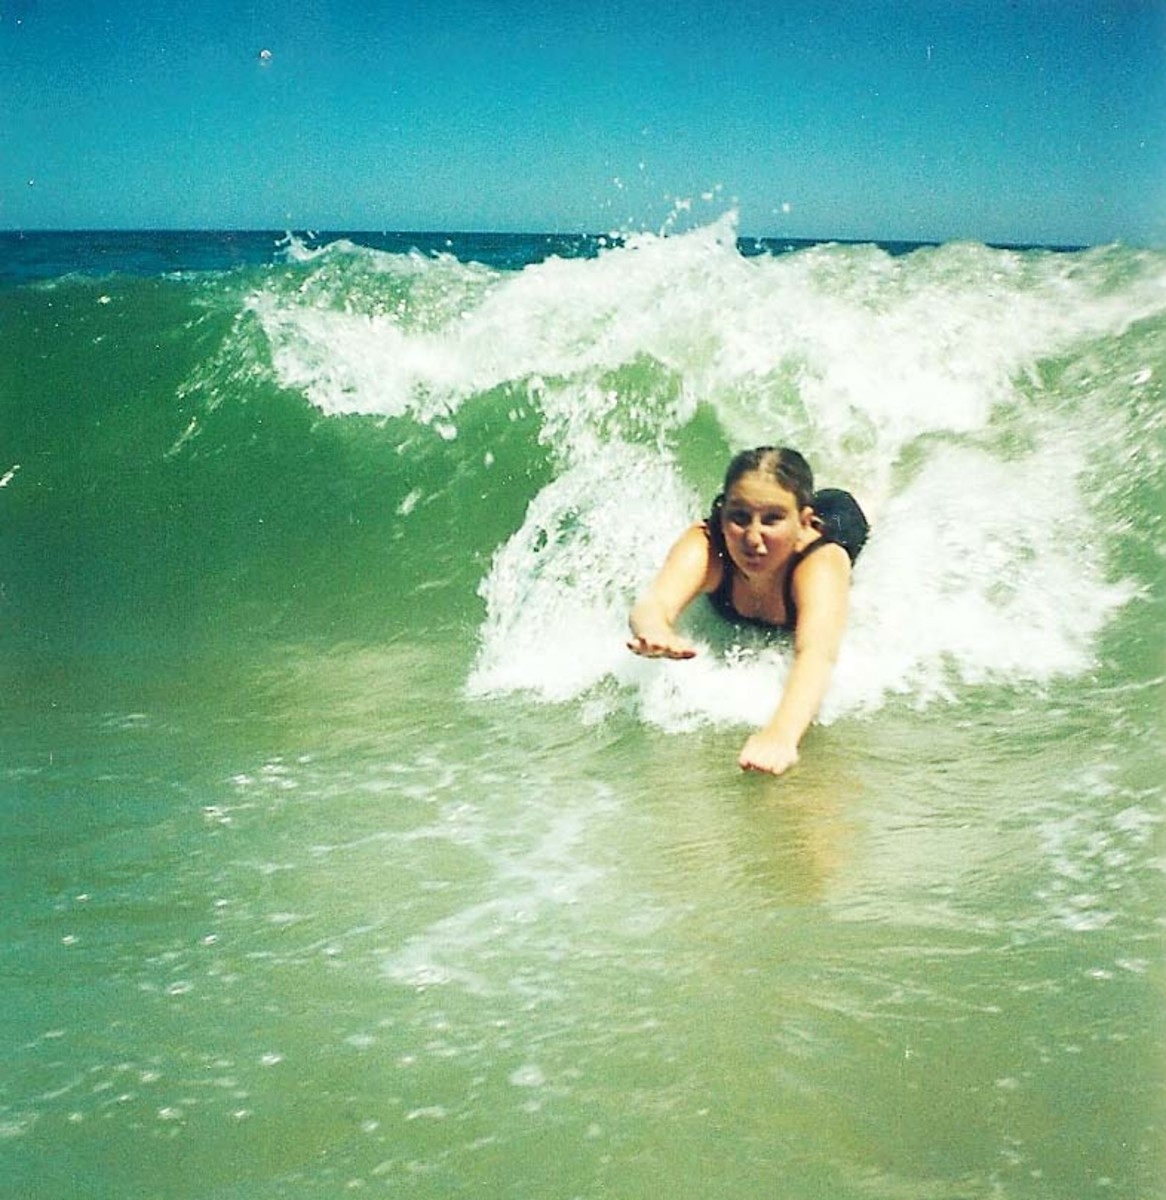 Bodysurfing - Girl in Ocean City, Maryland (phot0 by Dolores Monet)